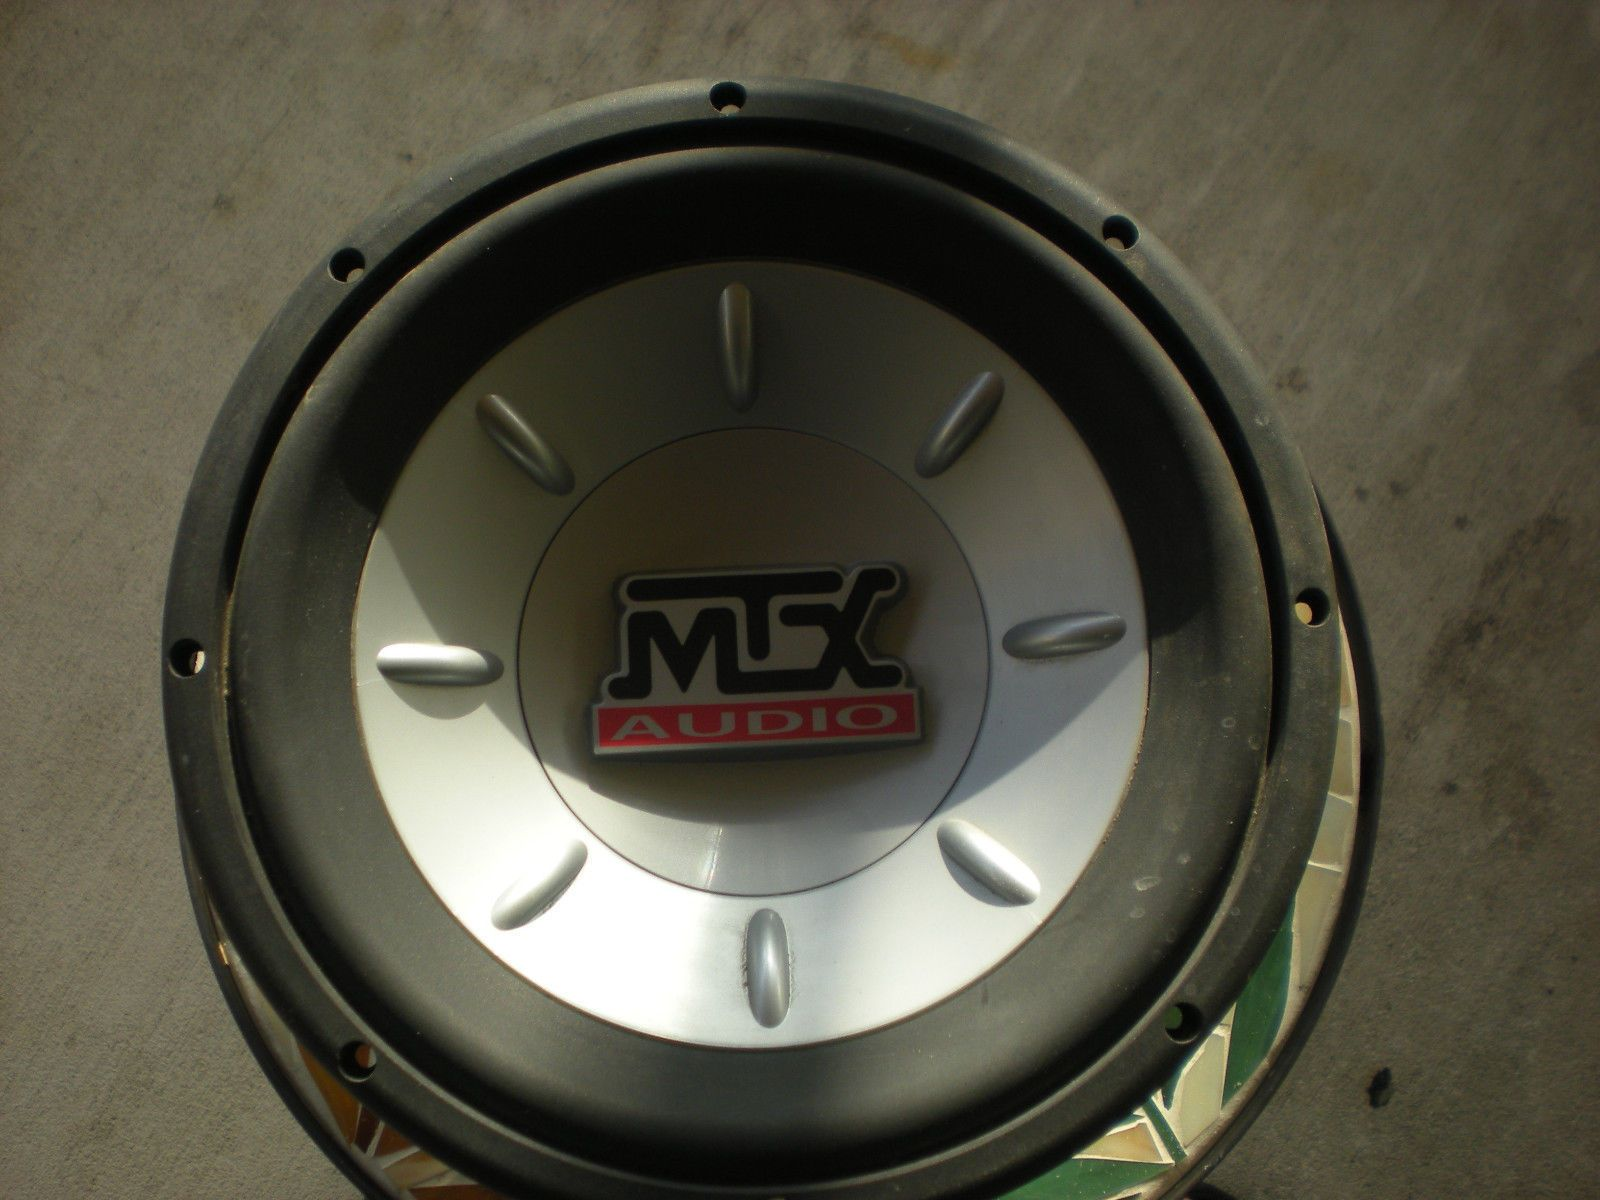 Mtx audio thunder 6000 10 svc subwoofer musical collection mtx audio thunder 6000 10 svc subwoofer publicscrutiny Images